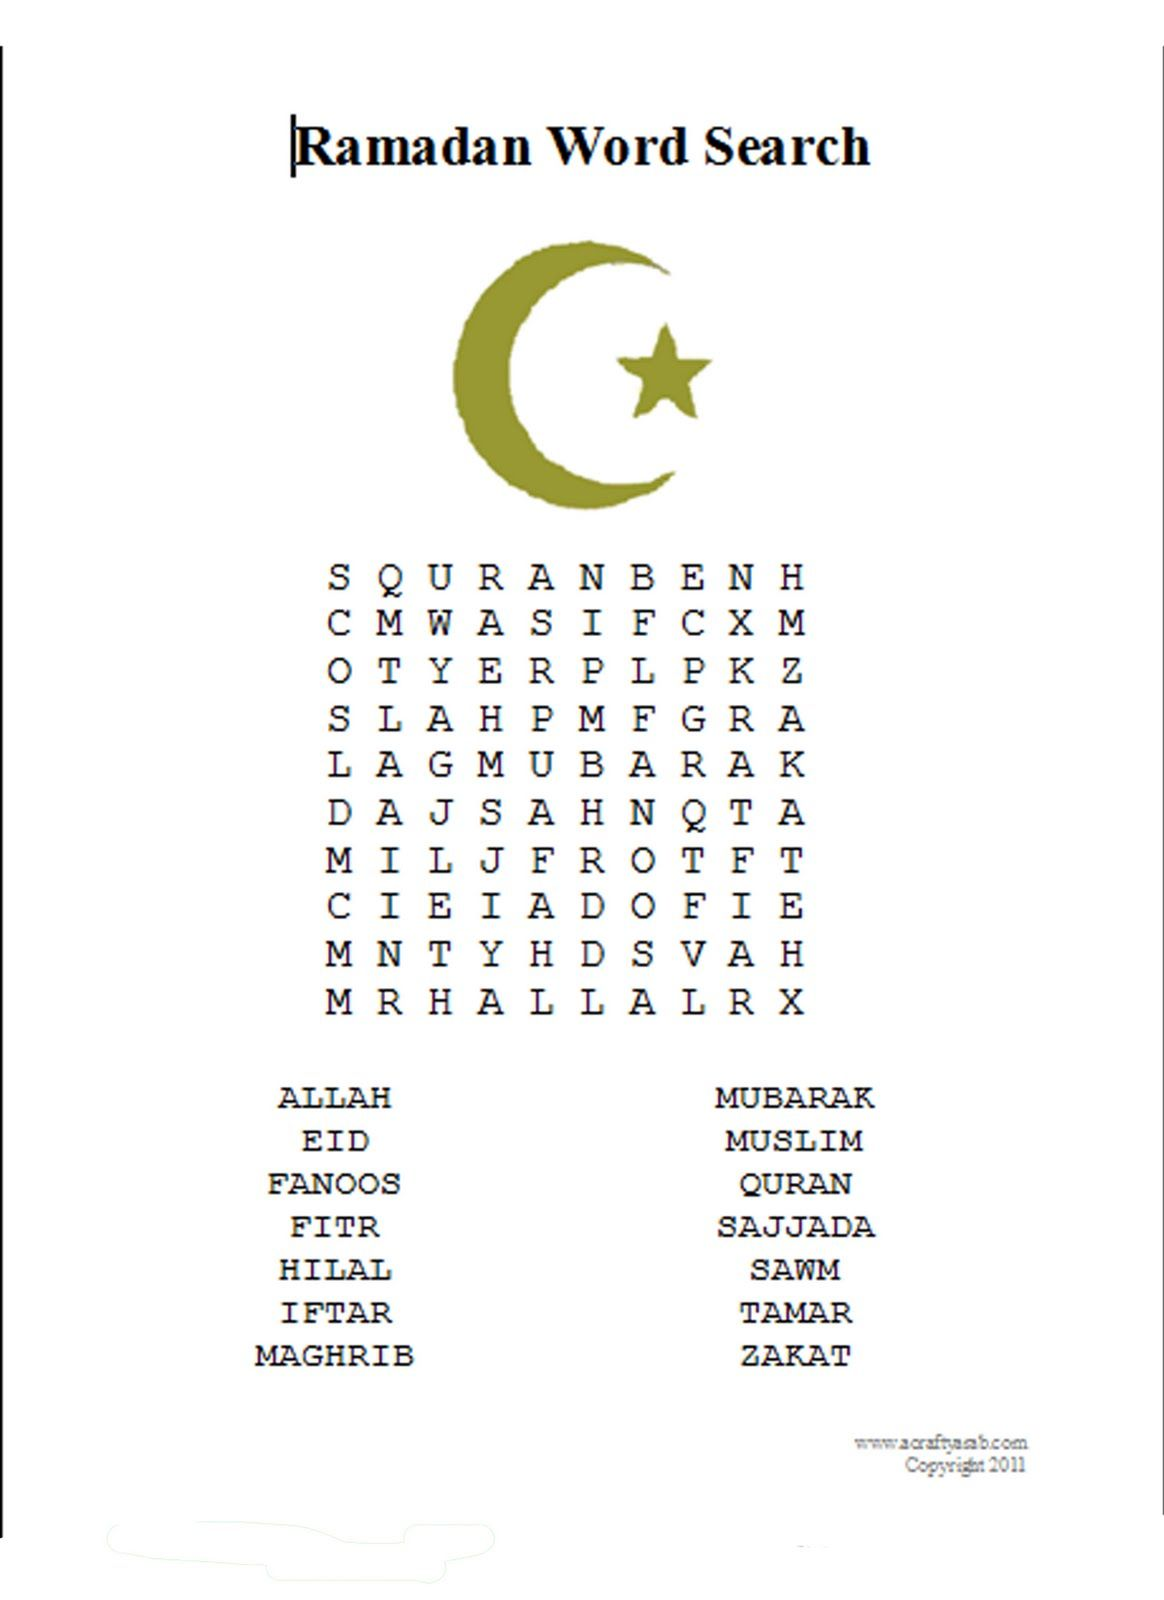 A Crafty Arab Ramadan Word Search